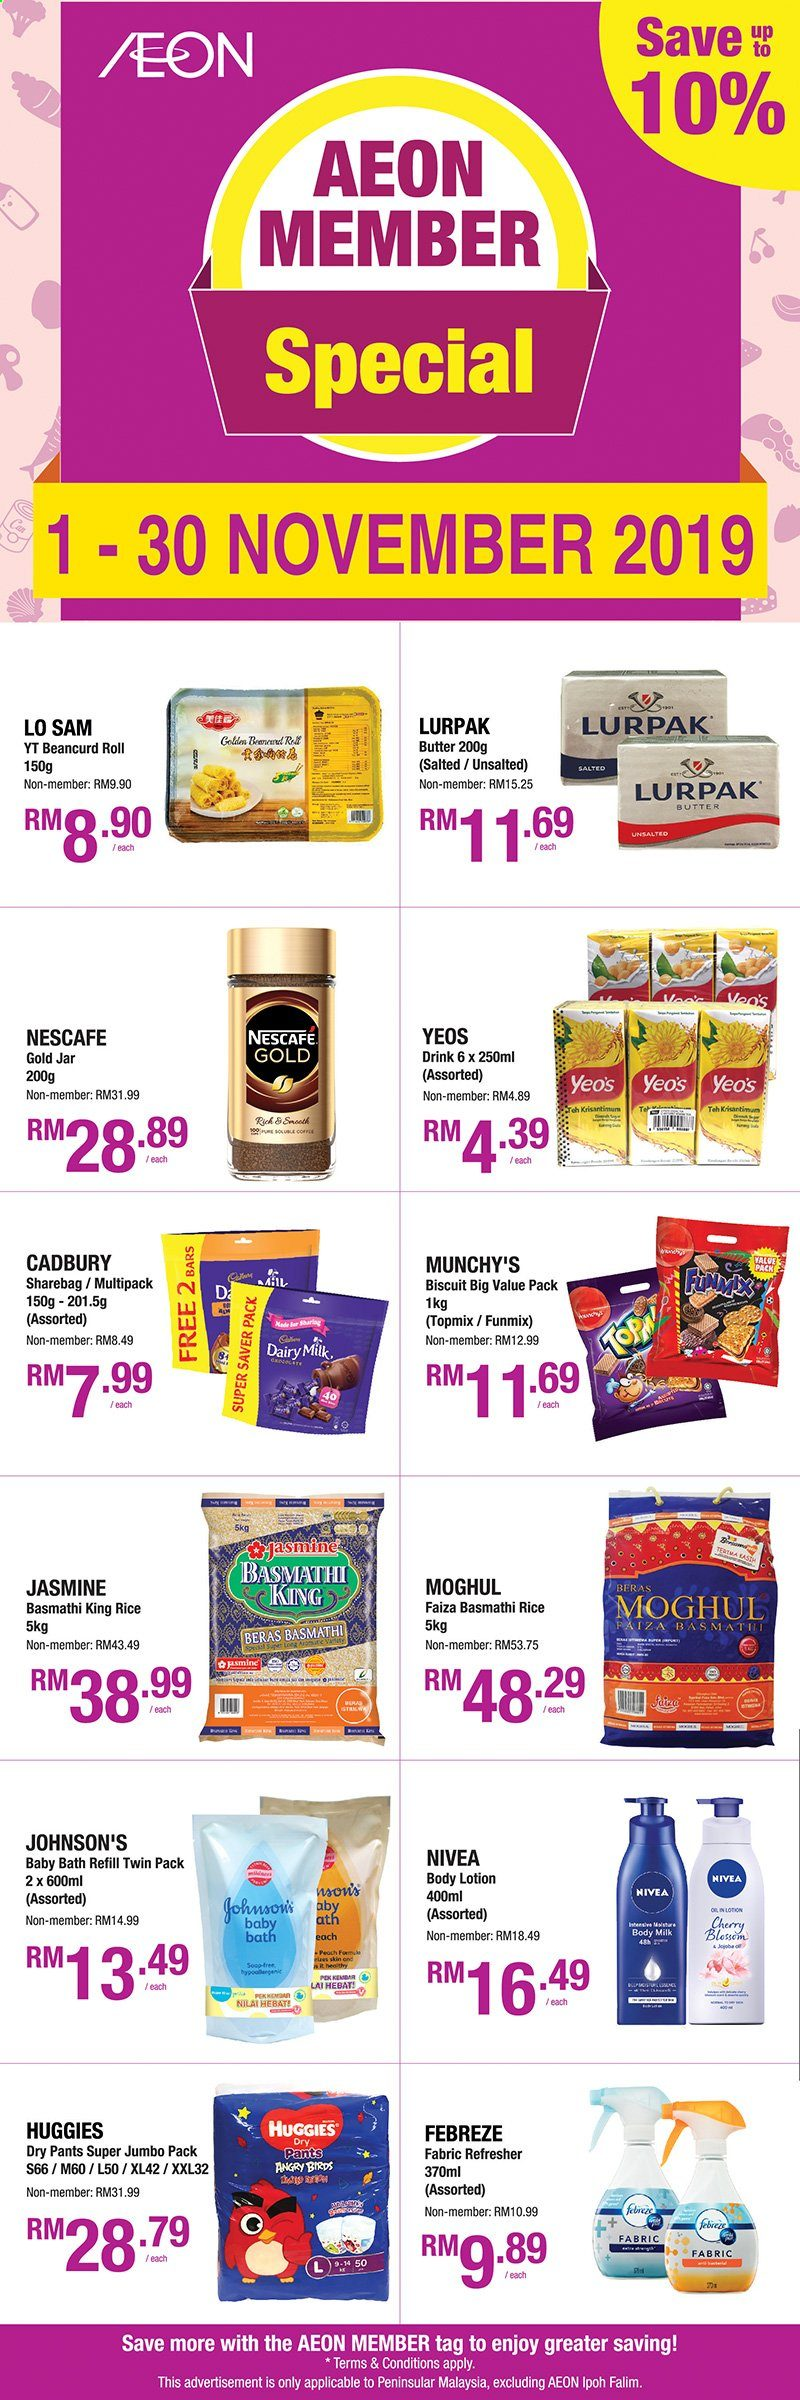 Iklan Aeon - 01.11.2019 - 30.11.2019 - Produk jualan - milk, rice, tea, bath, beras, body lotion, butter, febreze, huggies, jar, pants, nivea, refresher, top. Halaman 1.